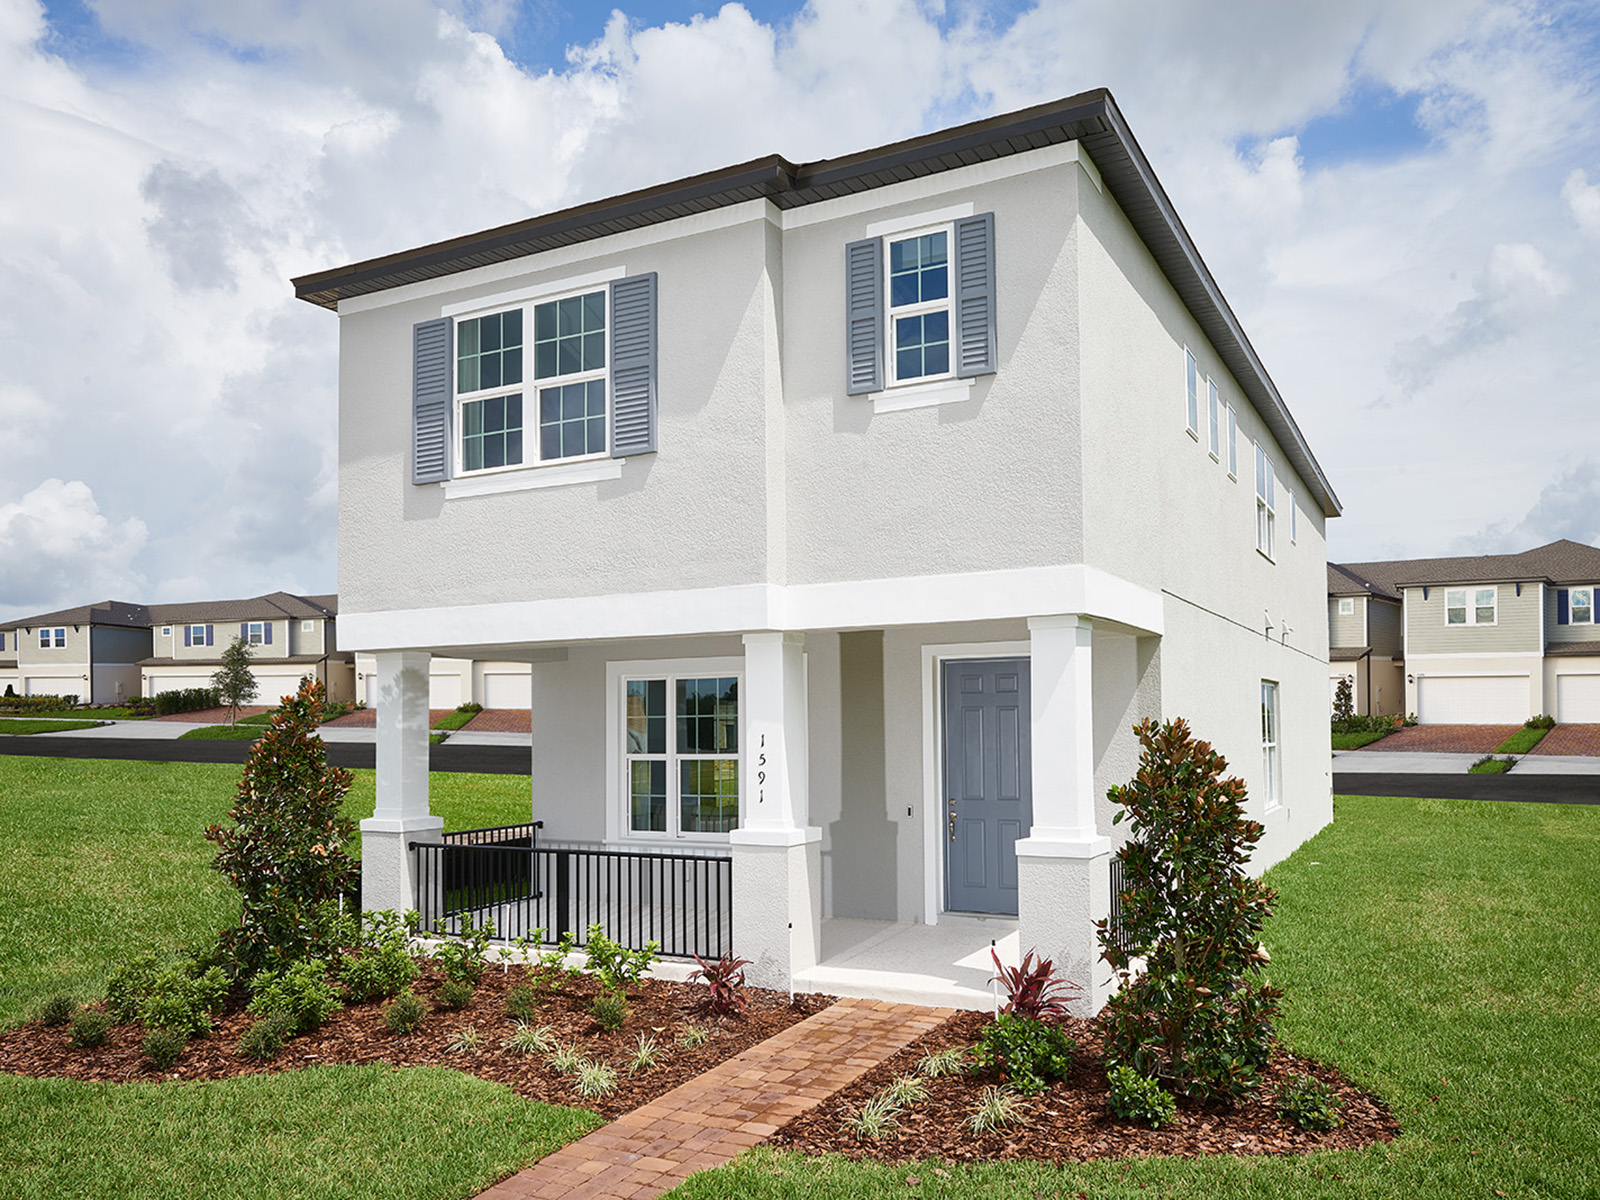 Arbors at Meadow Woods by Meritage Homes | New Homes for